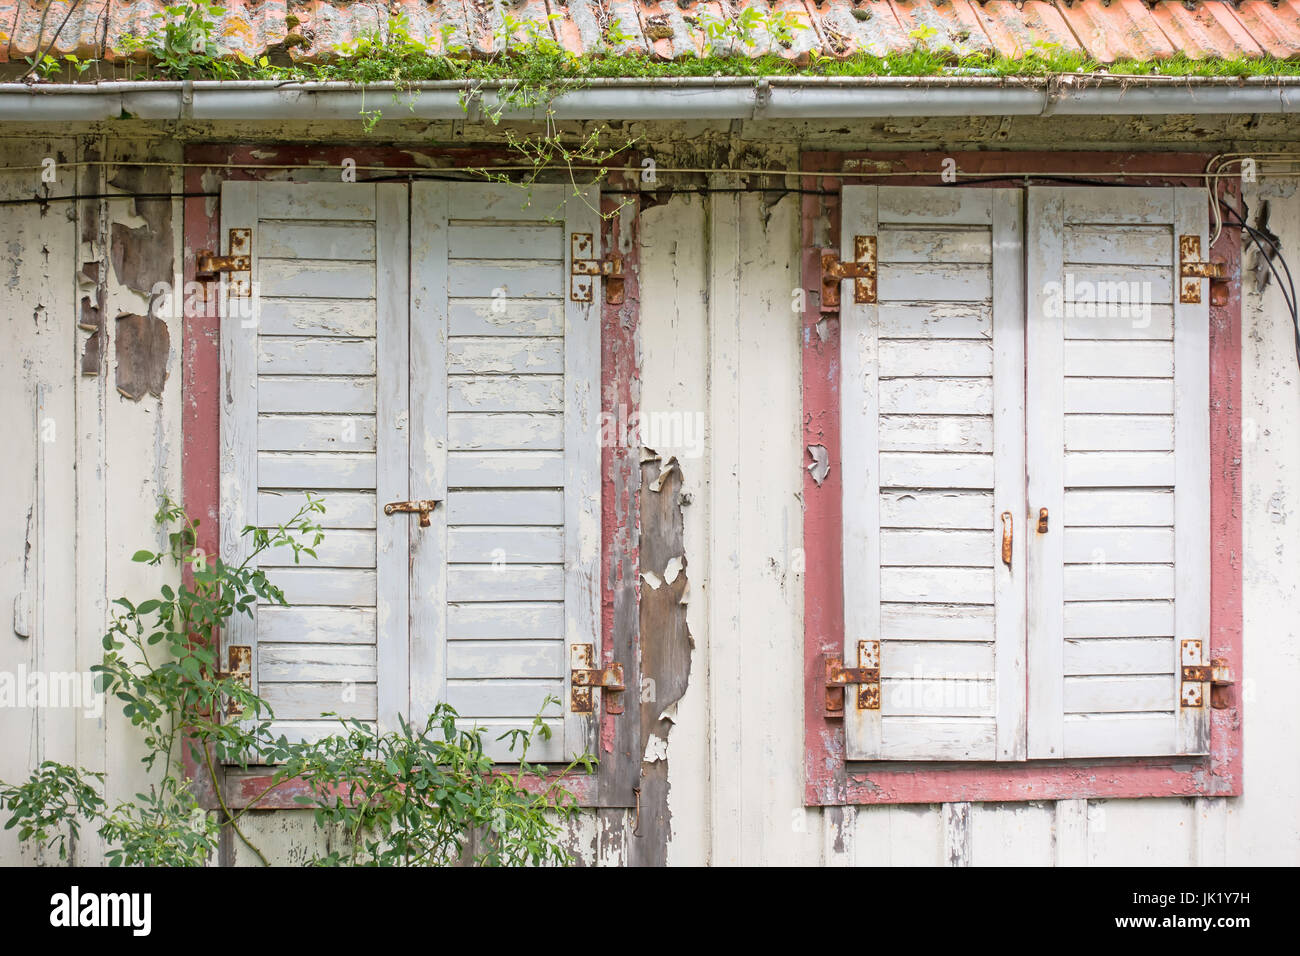 Windows with window shutters of an decayed house - Stock Image